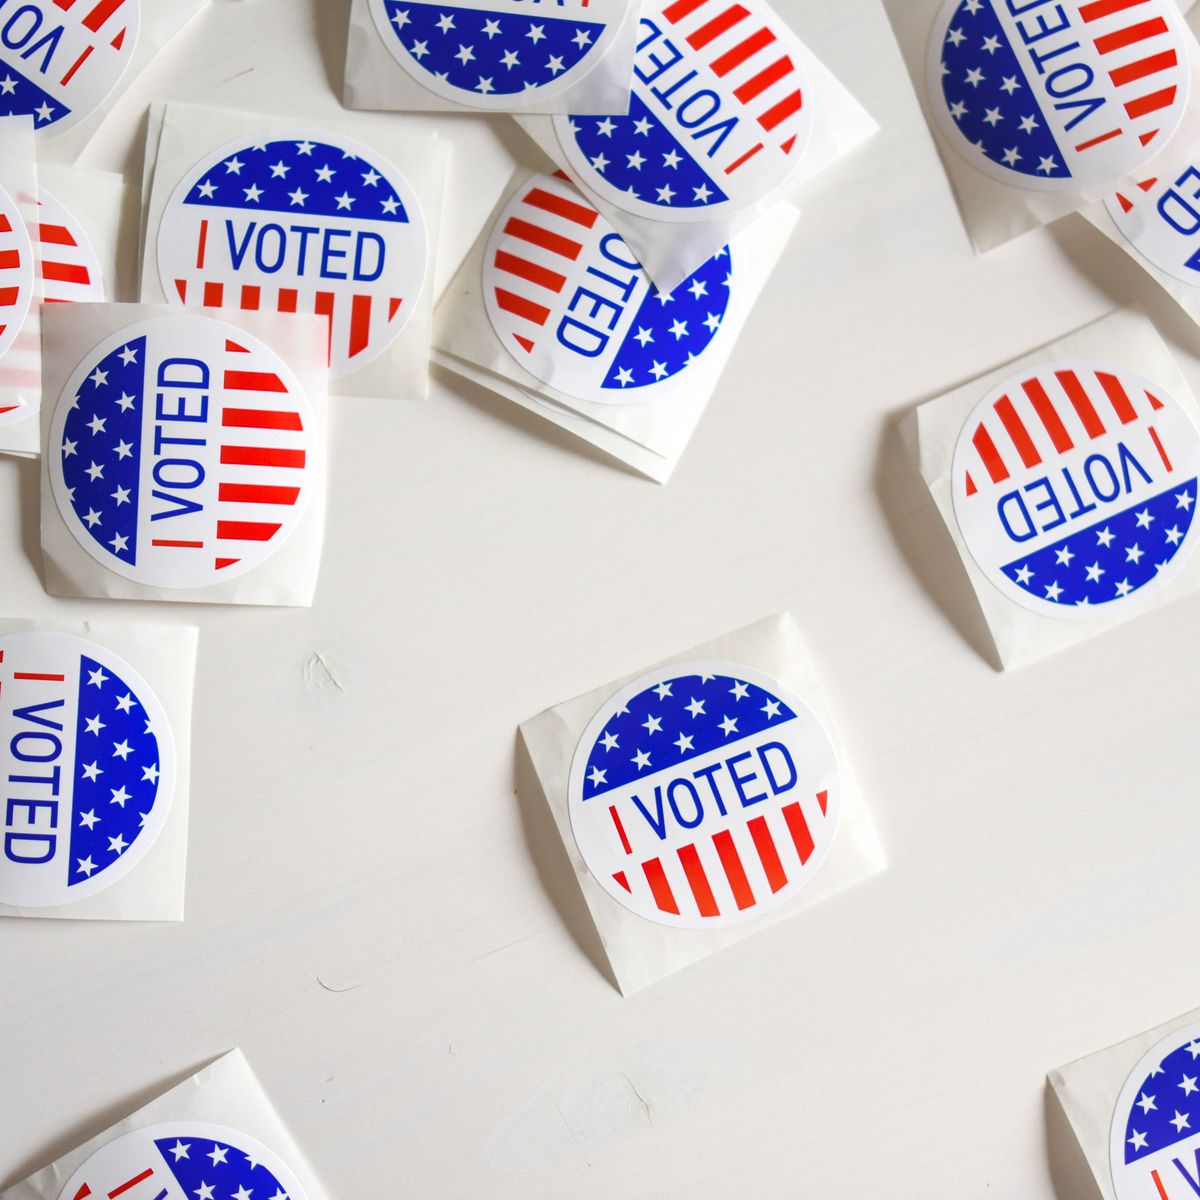 More than 2 million people have already voted in North Carolina